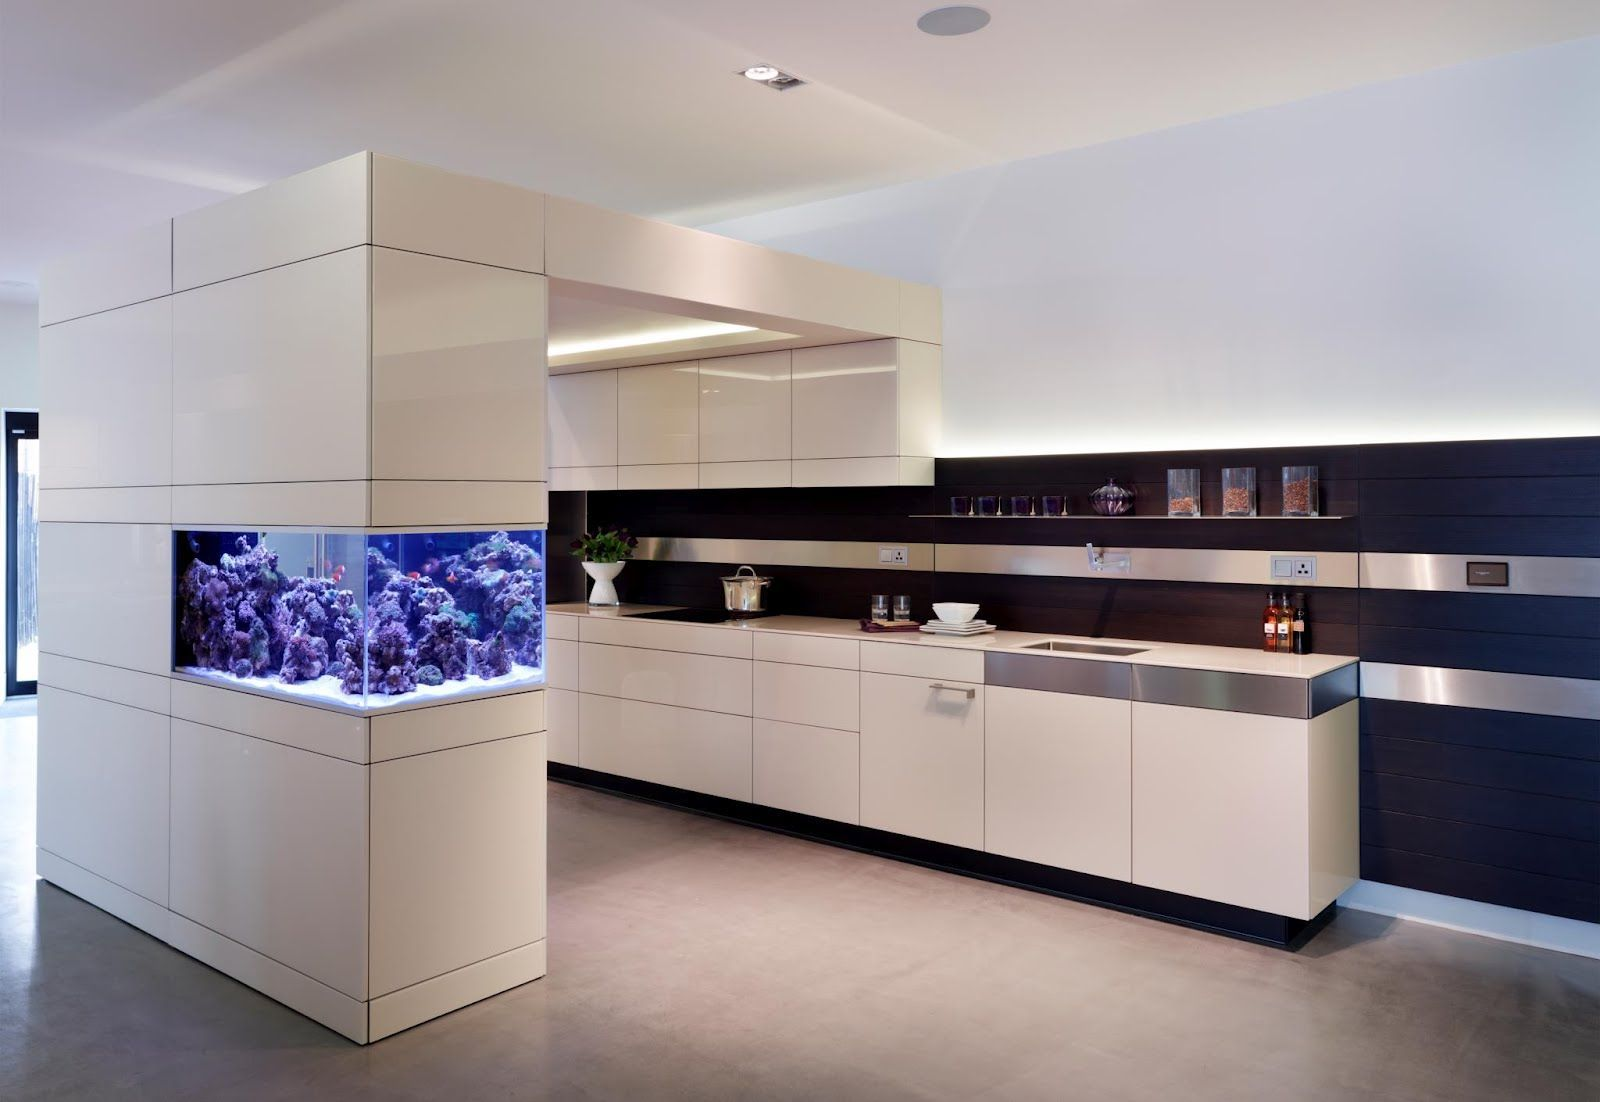 Fabulous Corner Wall Fish Tank Installed In White Divider Decorating Modern Kitchen Beautiful W Kitchen Furniture Design Modern Kitchen Design Kitchen Design